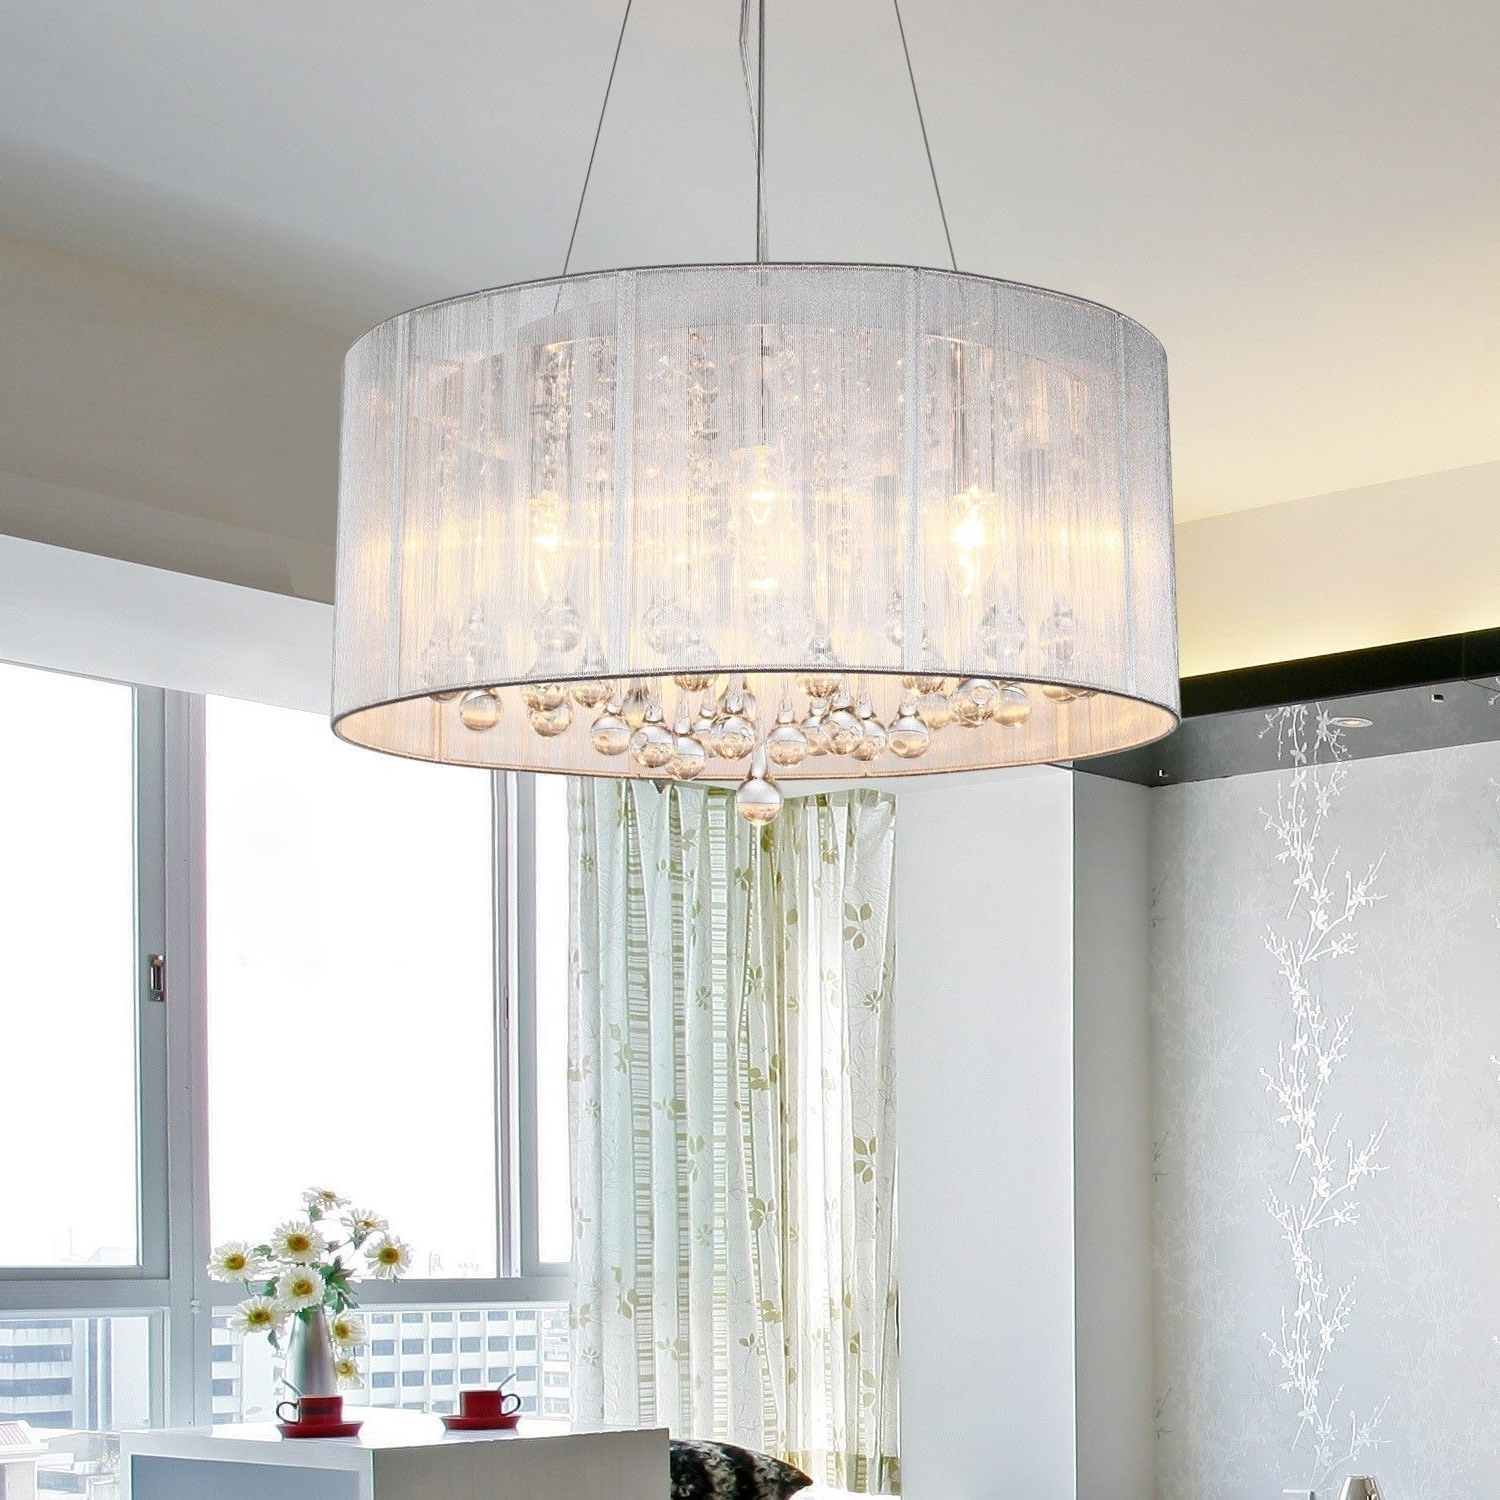 2017 Lampshades For Chandeliers Intended For Awesome Lamp Shades For Chandeliers Chandelier From The Elegant (View 6 of 15)